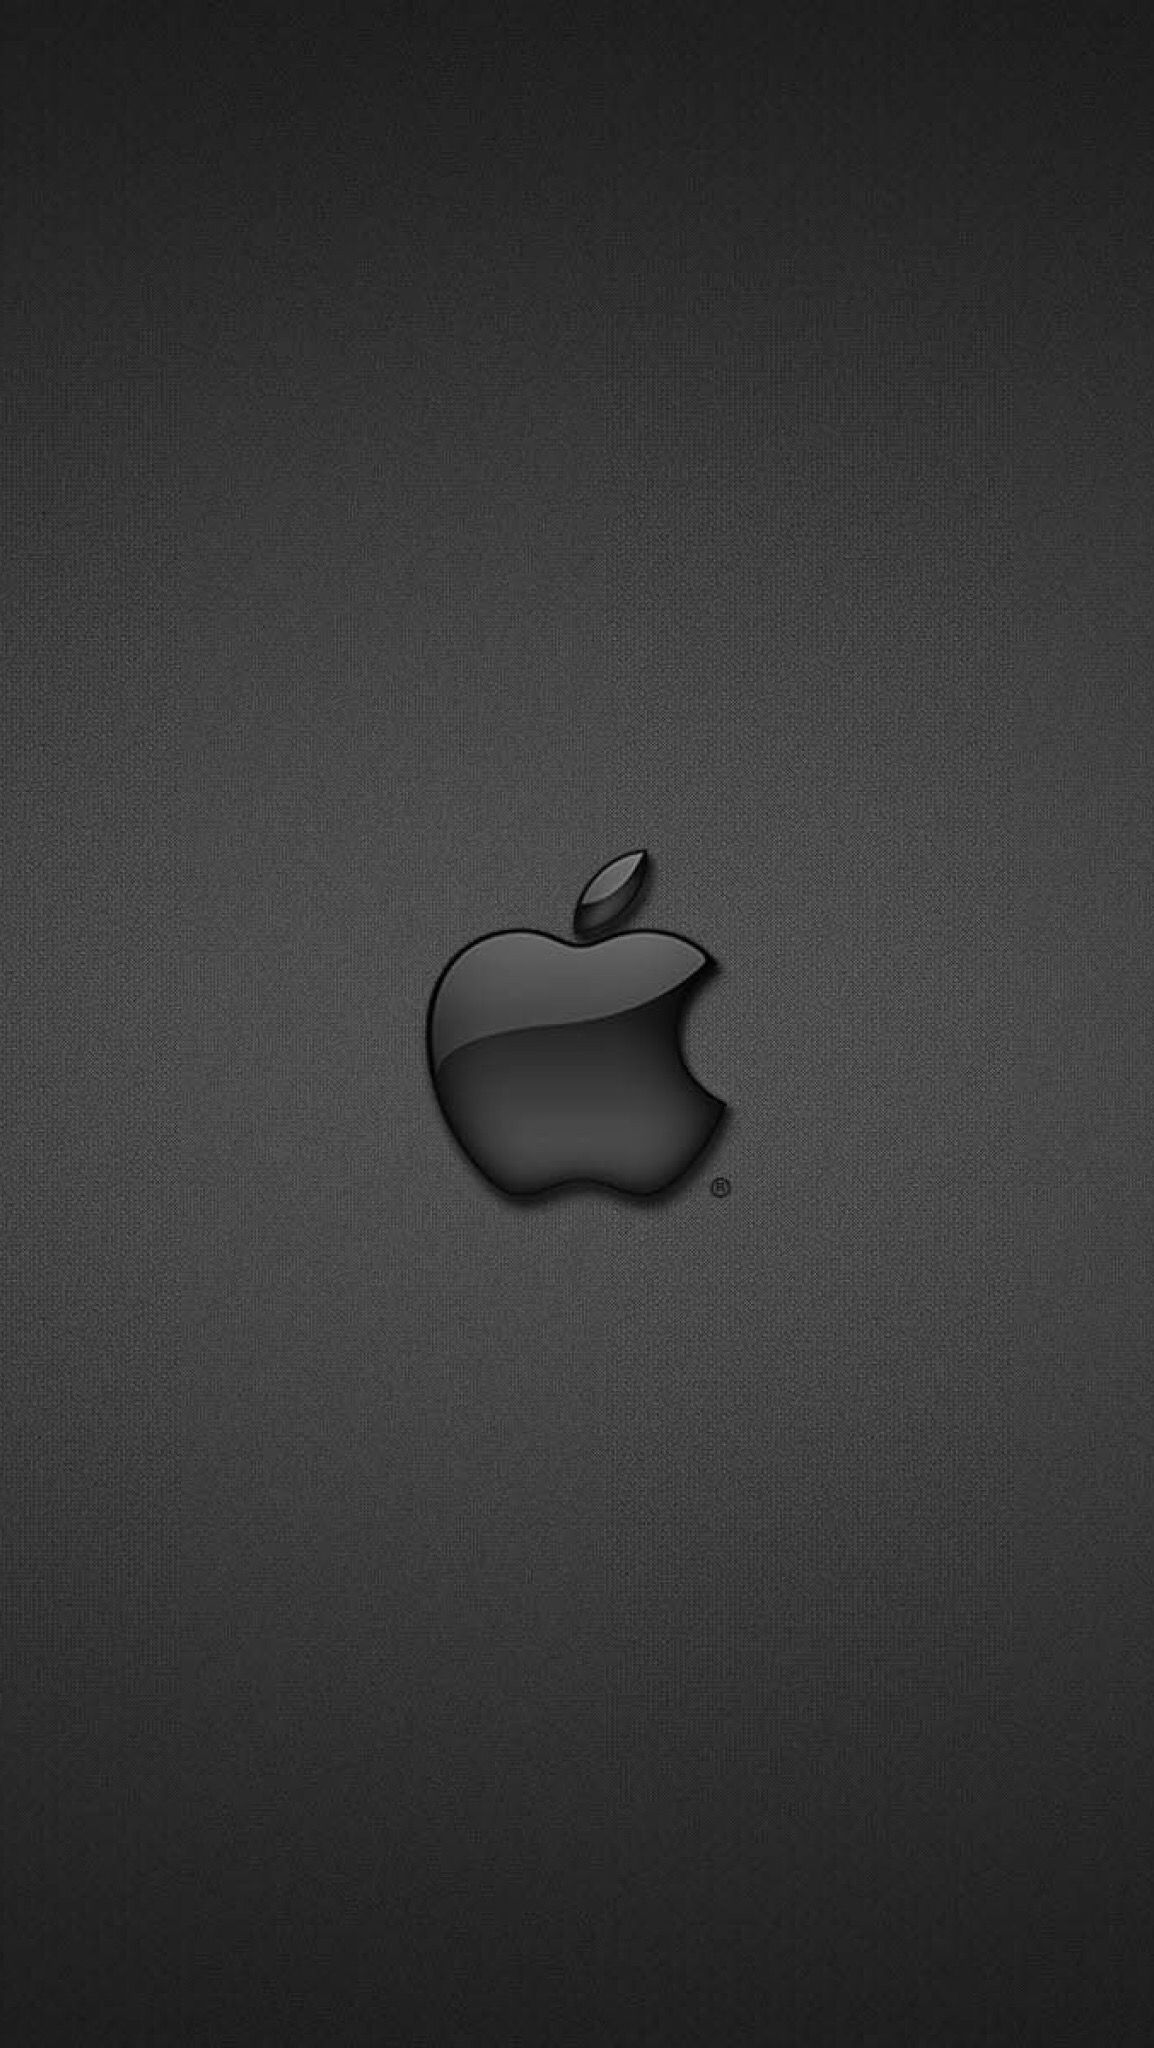 how to make the apple symbol on pc